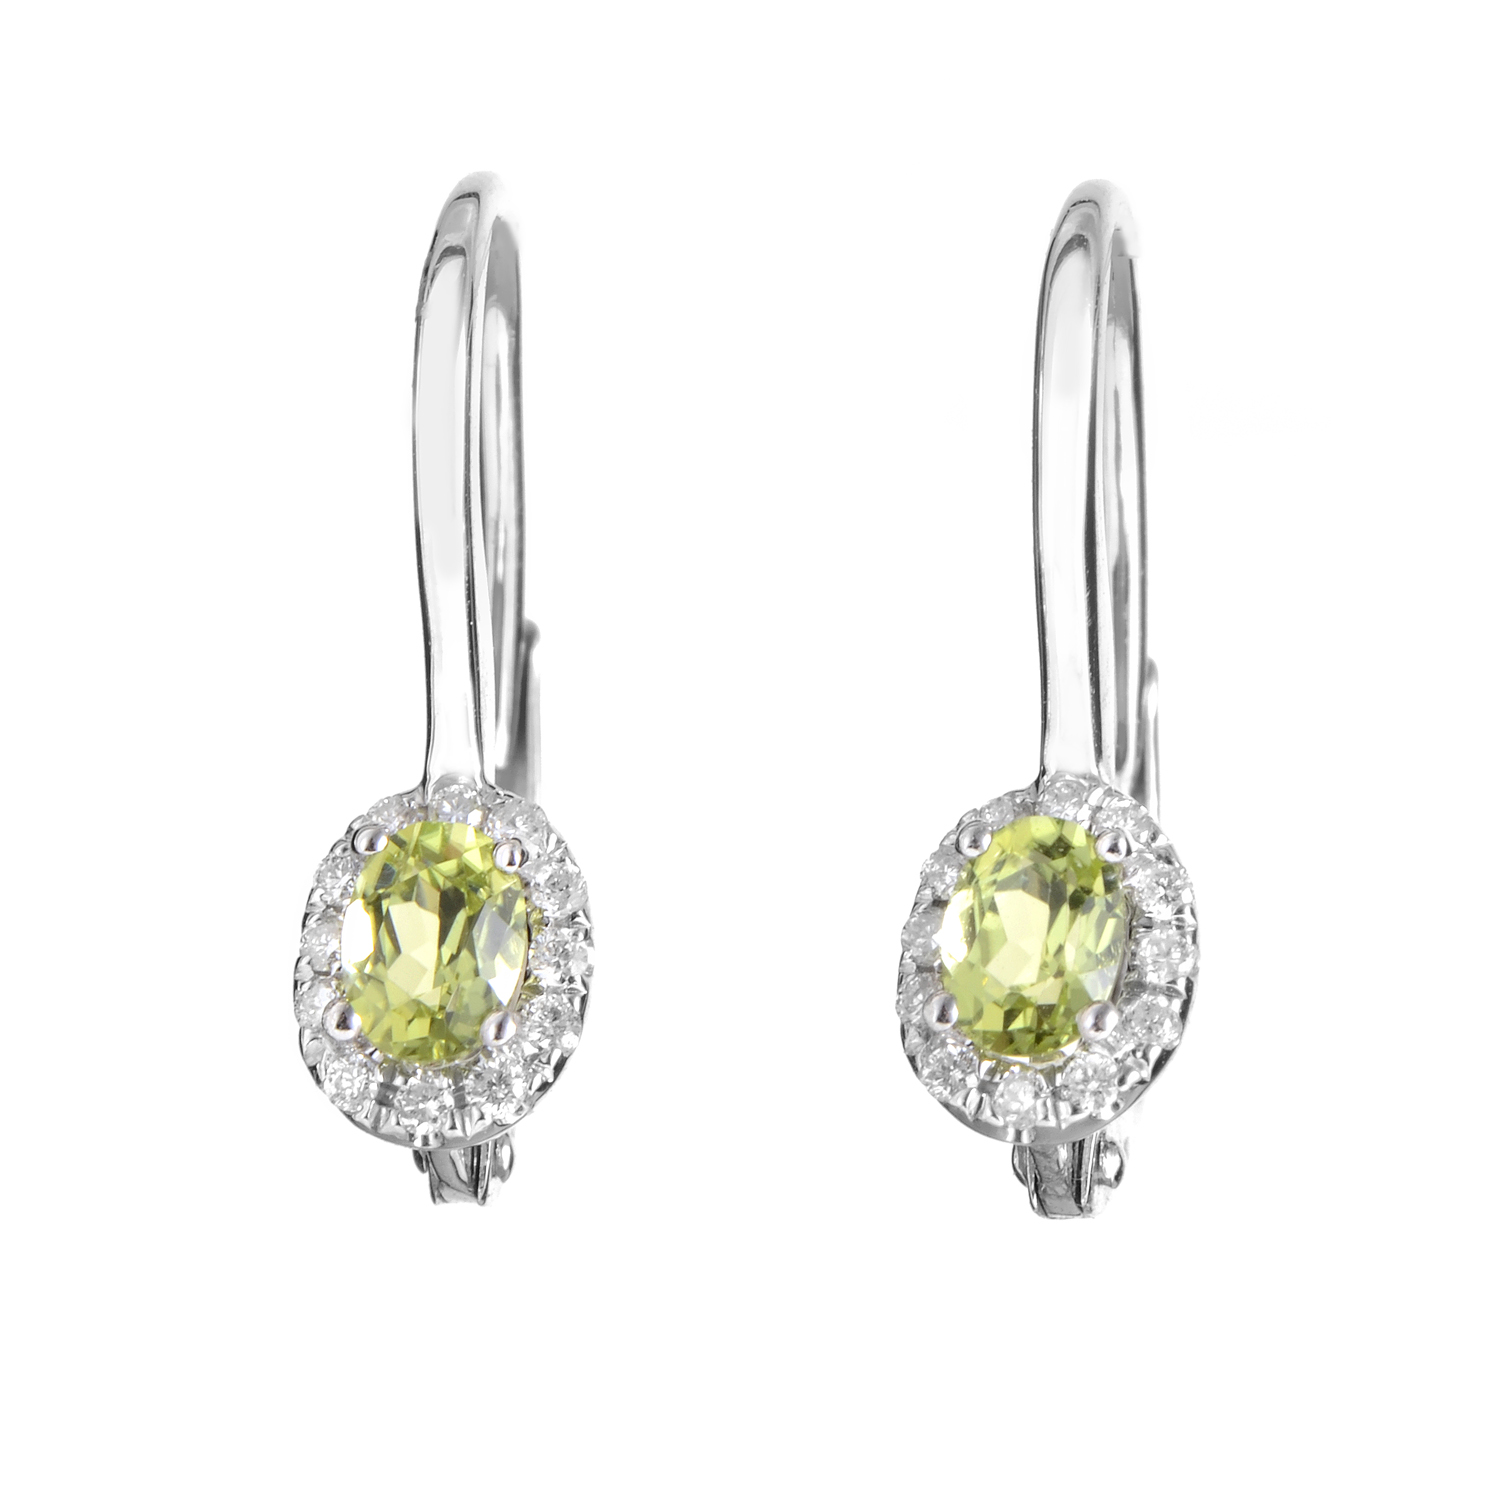 Women's 18K White Gold Diamond & Peridot Earrings SEEP70741RBZPE